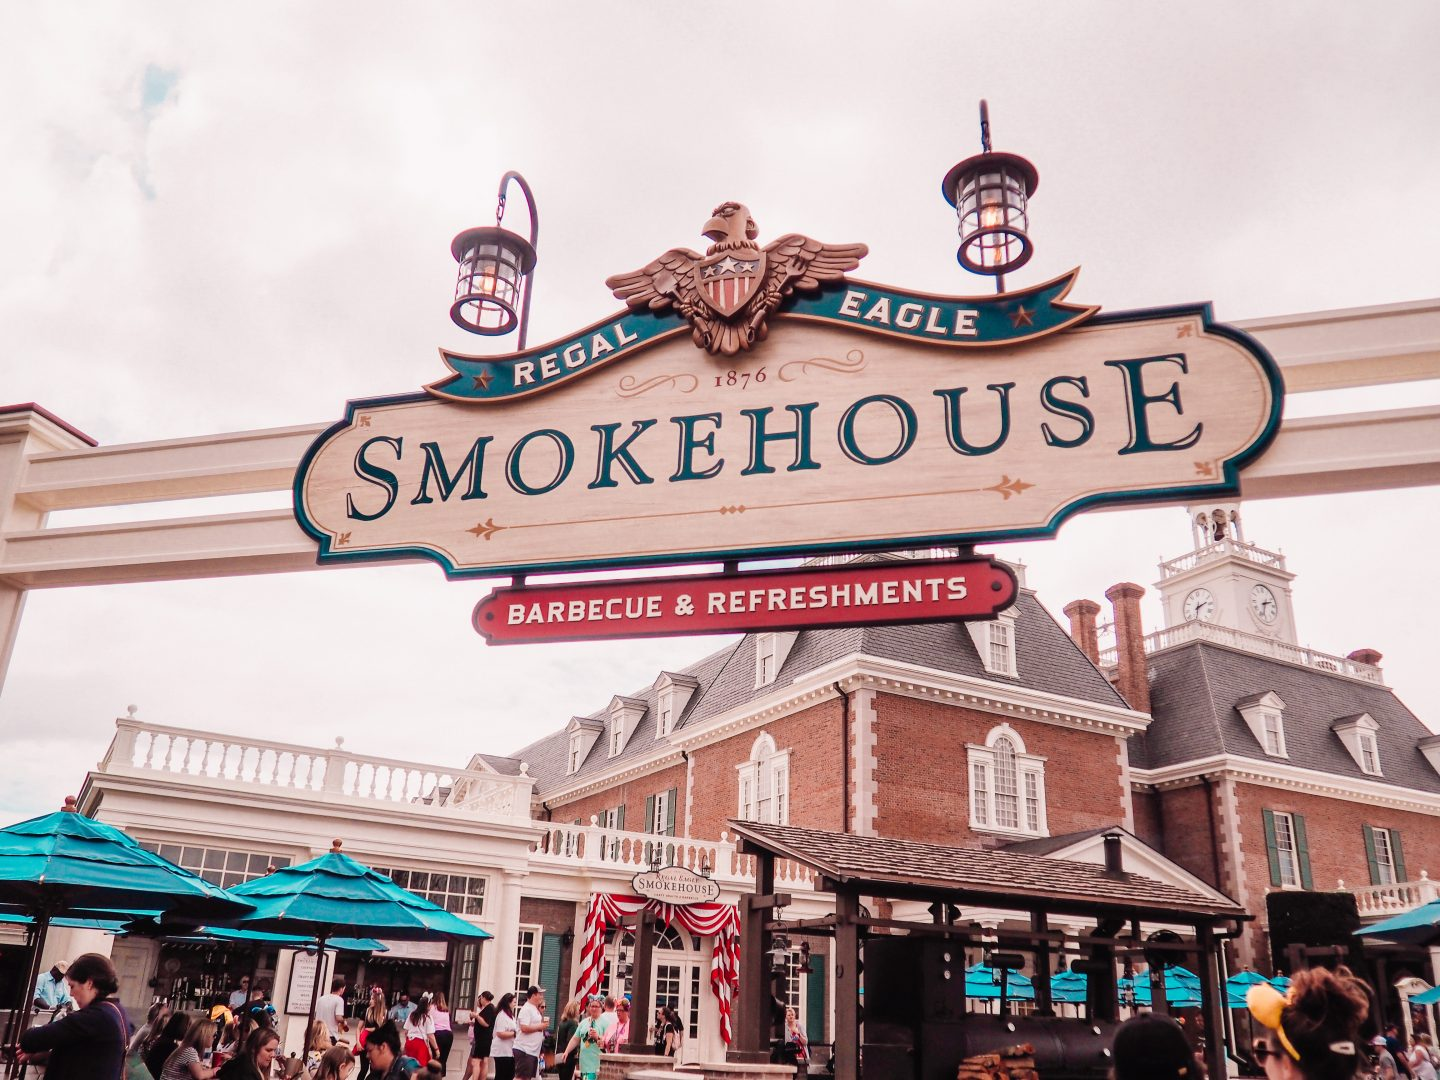 Regal Eagle Smokehouse BBQ and Craft Beers at Epcot Disney World